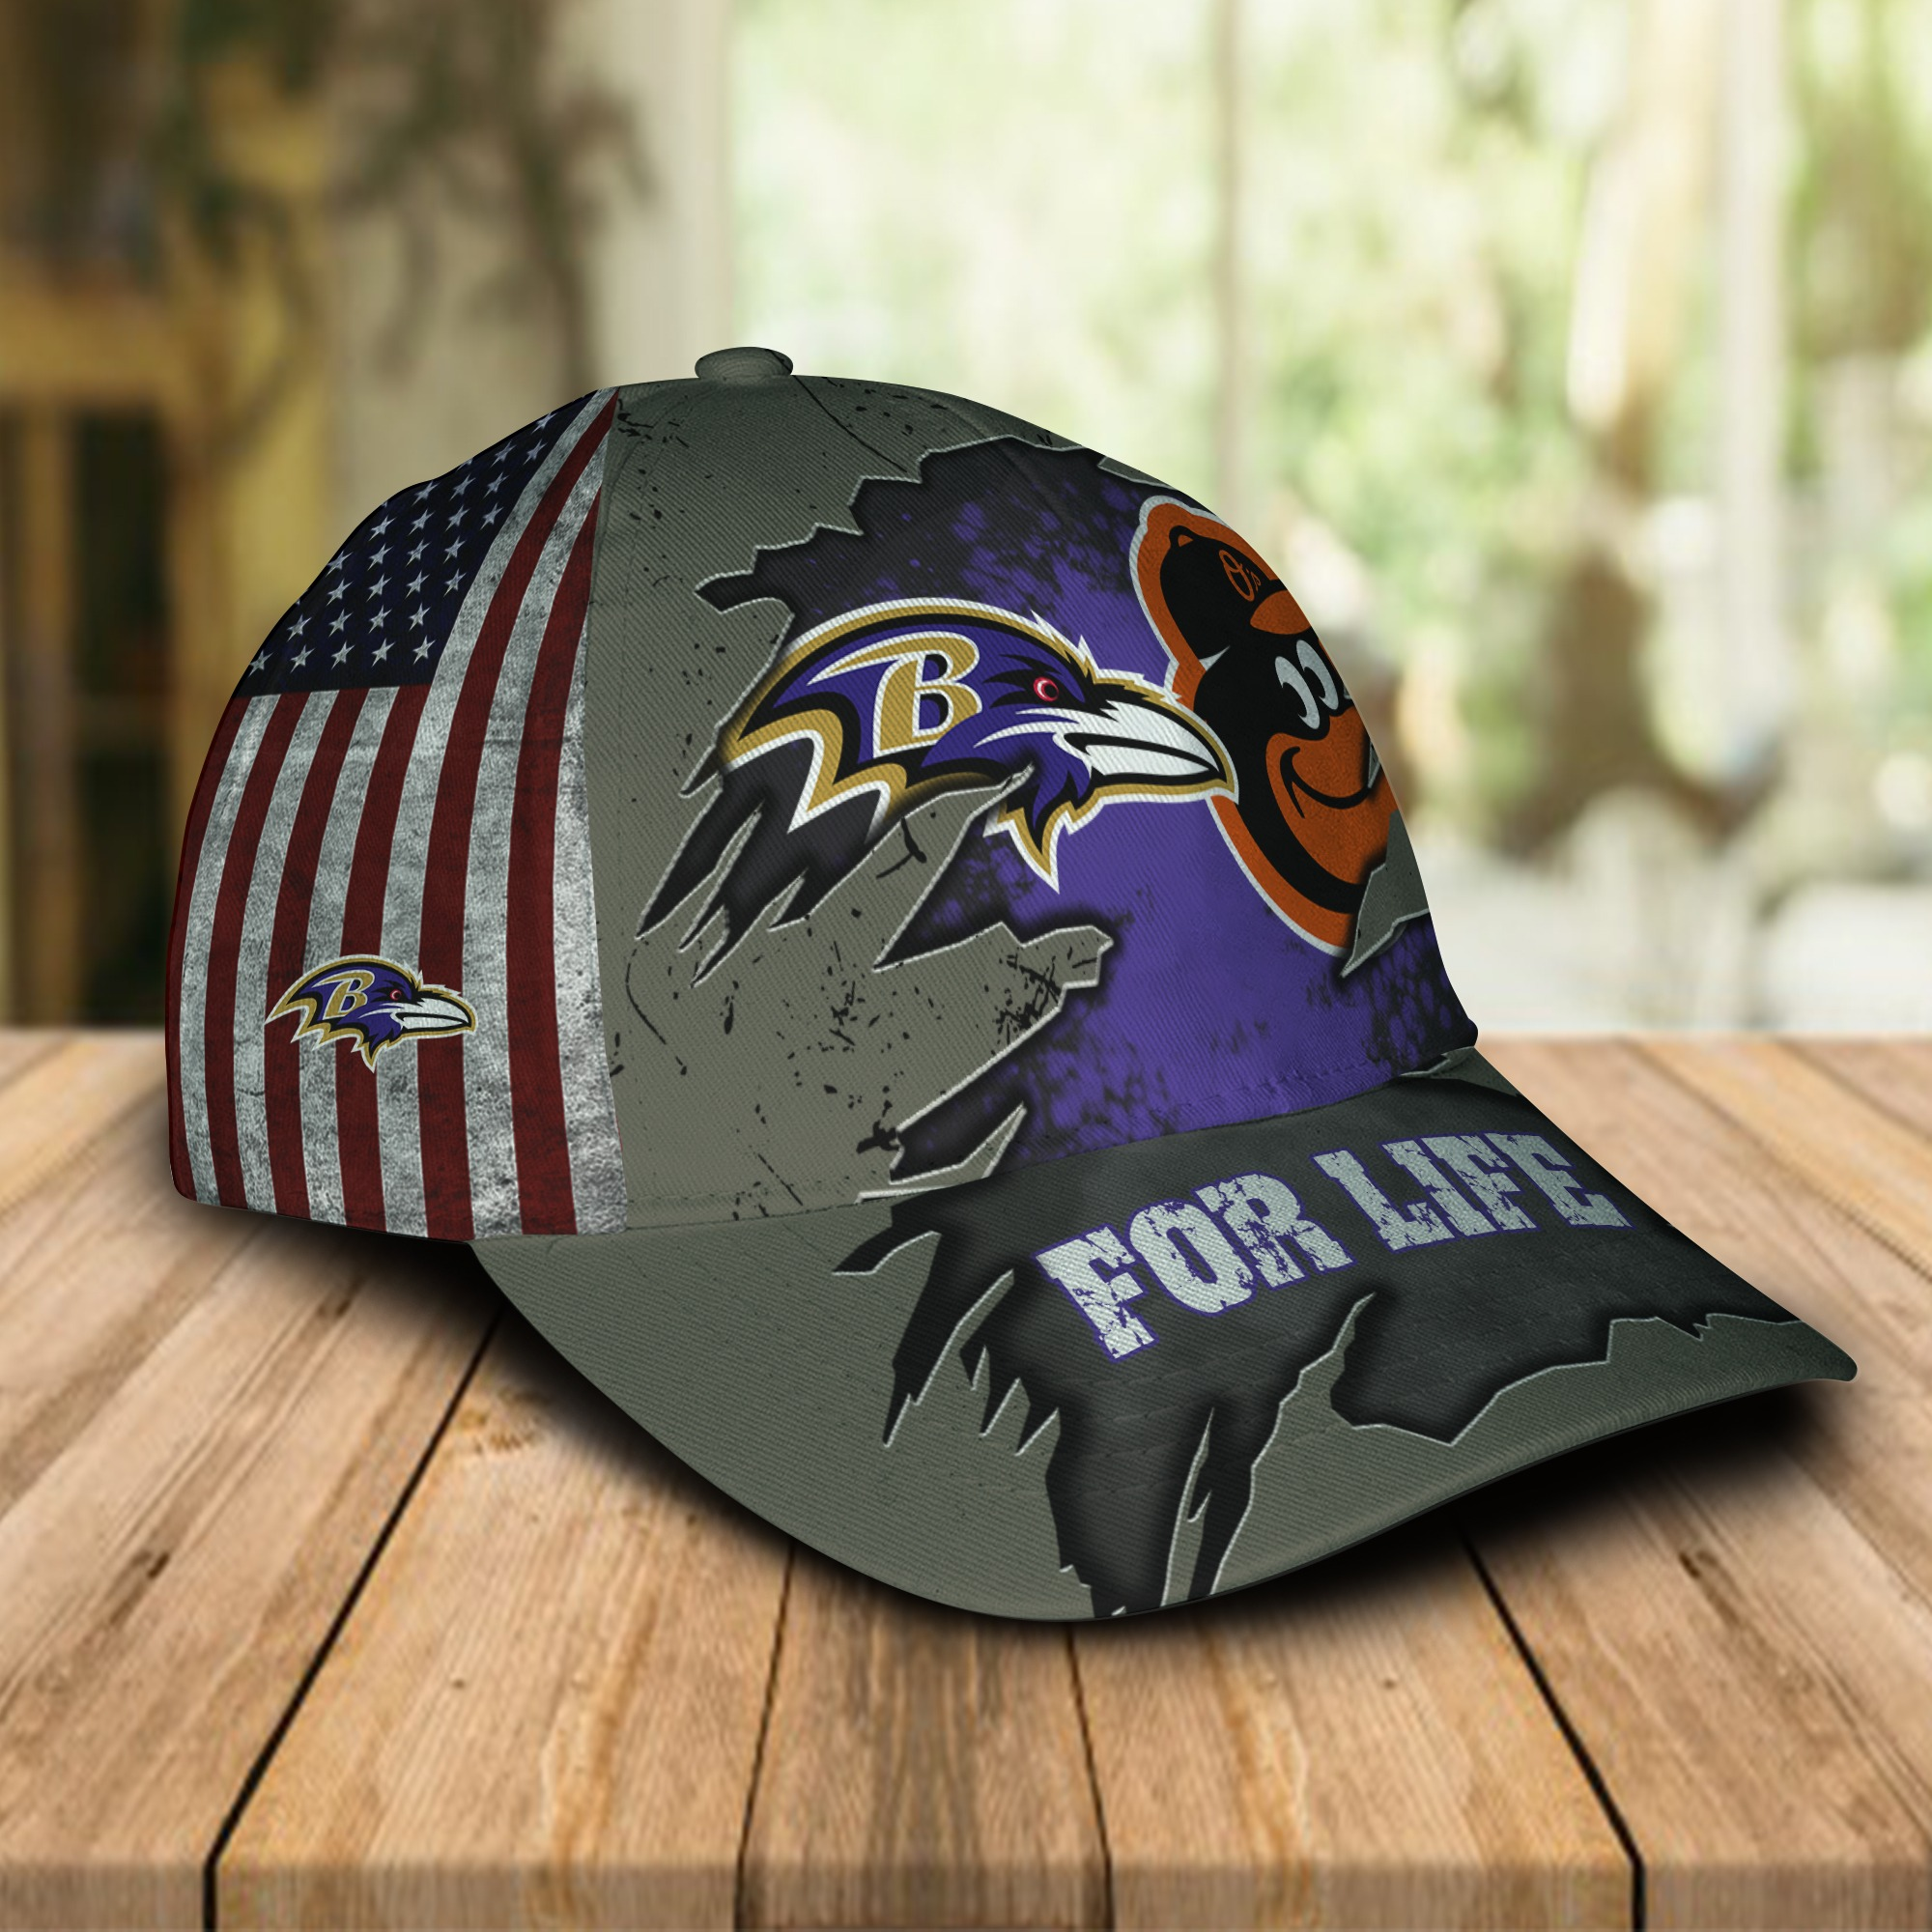 Baltimore ravens and baltimore orioles for life cap 1